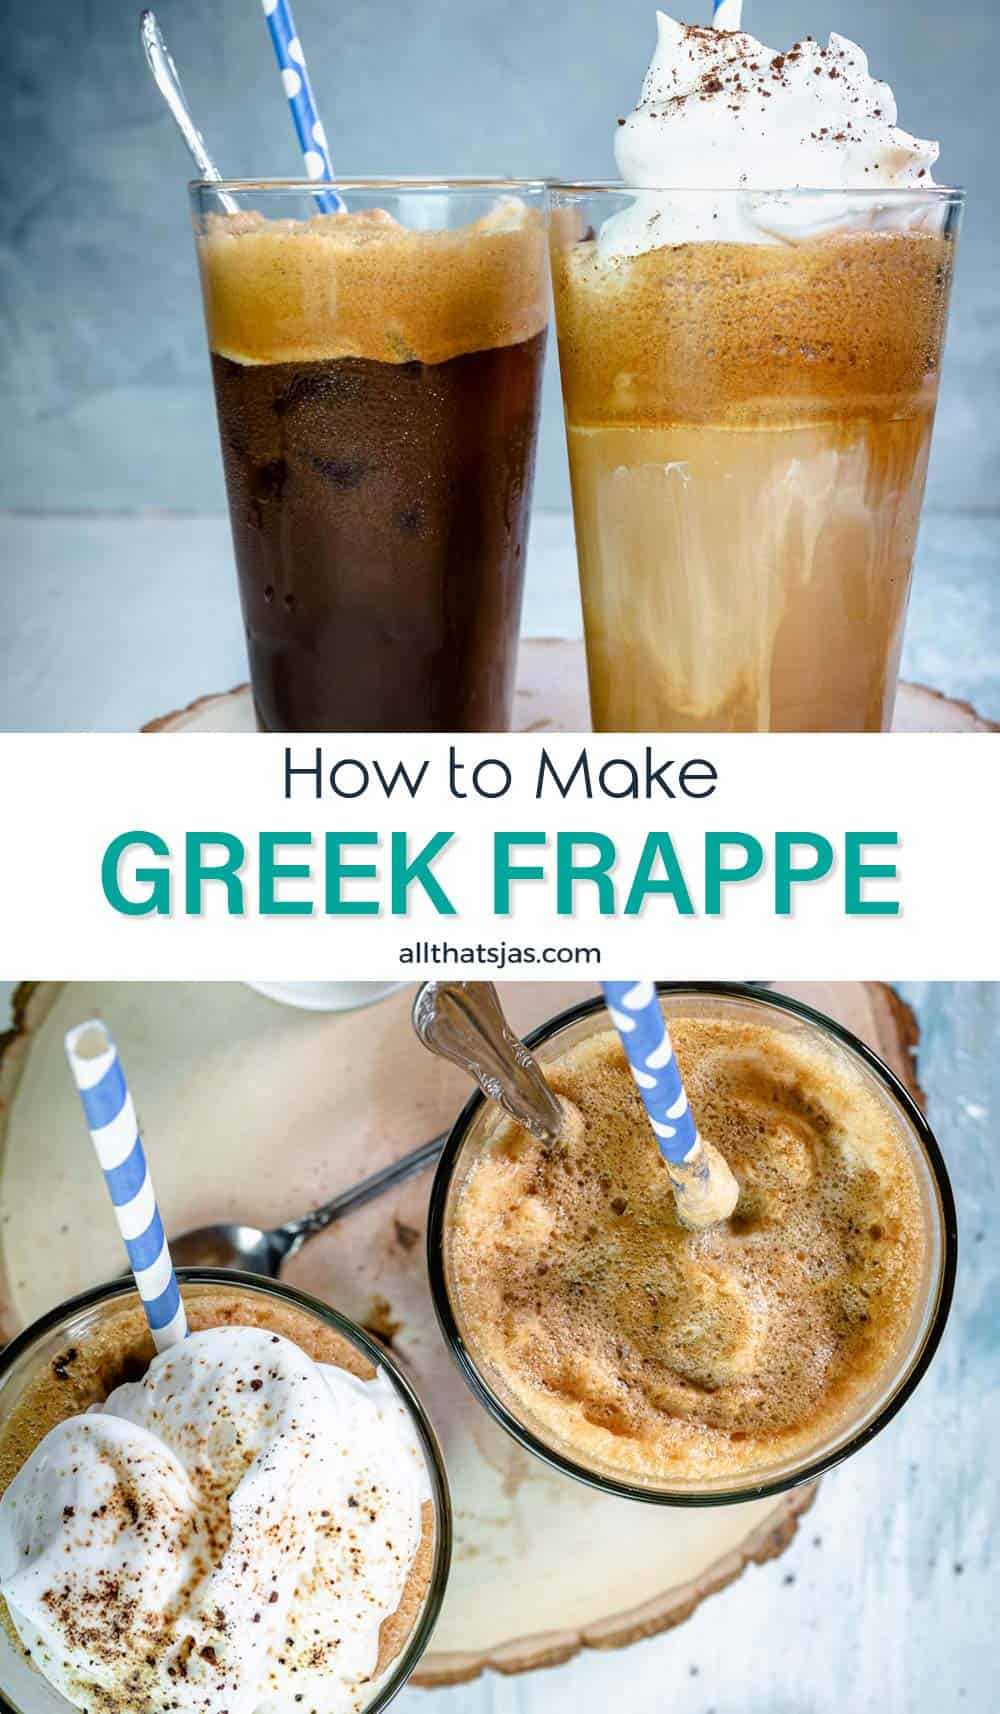 Two photo image of Greek iced coffee drink in glasses with text in the middle.